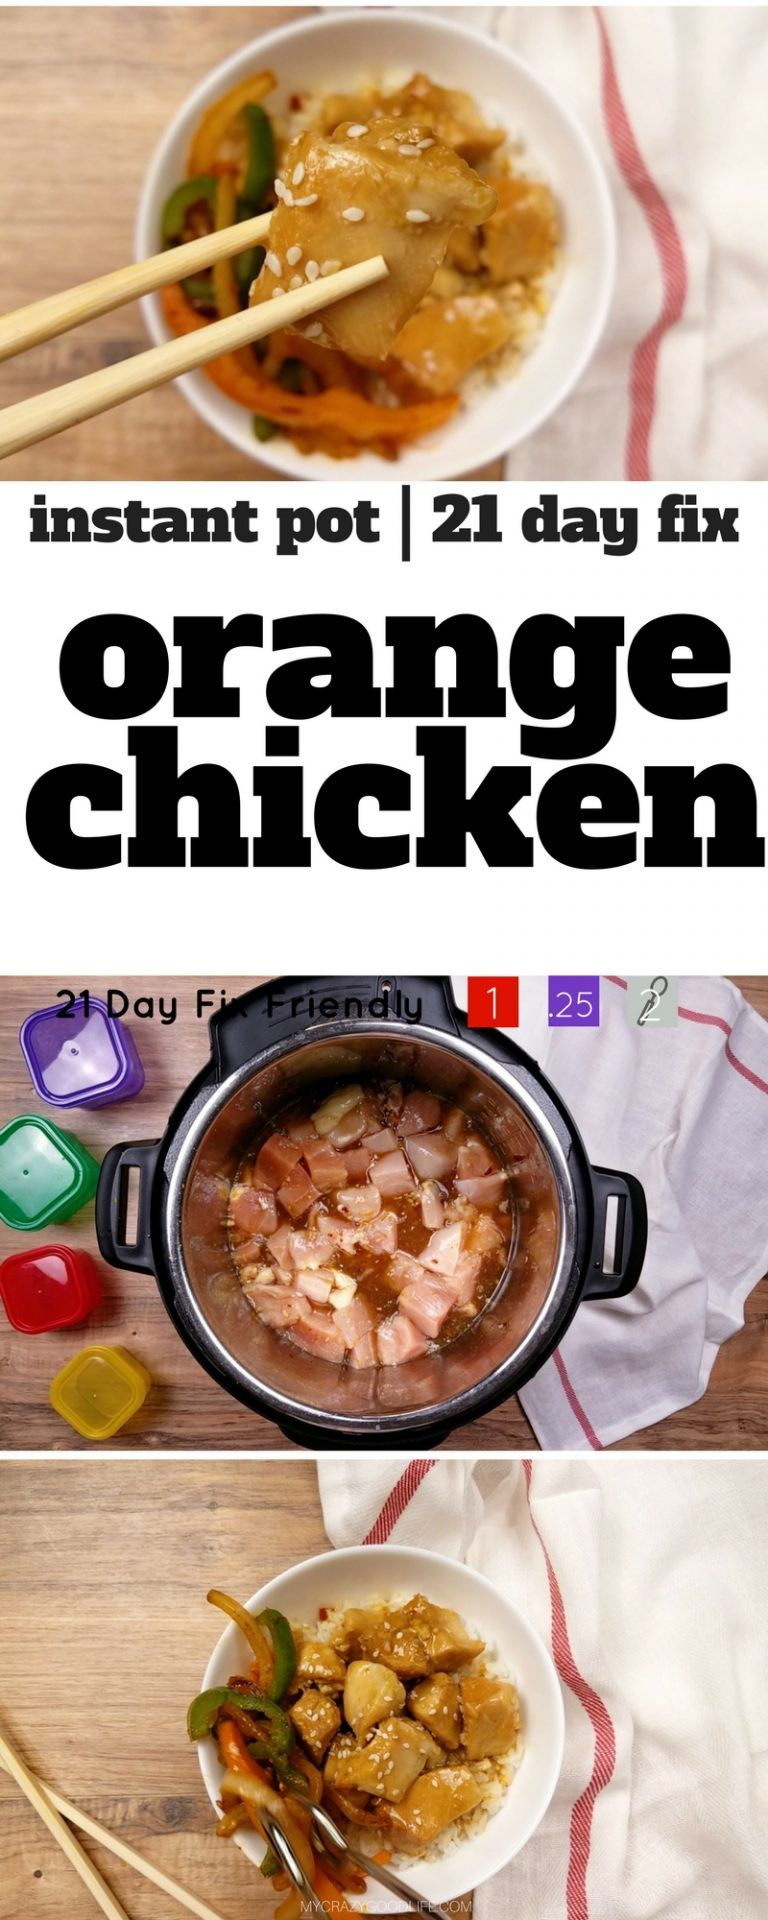 Get your chinese food fix with this instant pot orange chicken food get your chinese food fix with this instant pot orange chicken recipe forumfinder Gallery